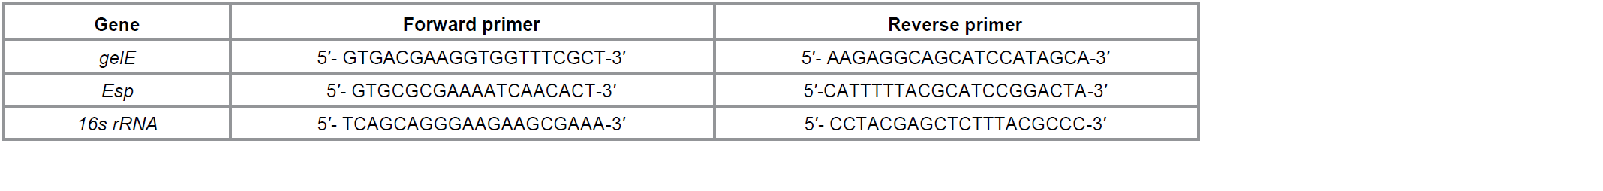 primers of gelE, esp and 16srRNA